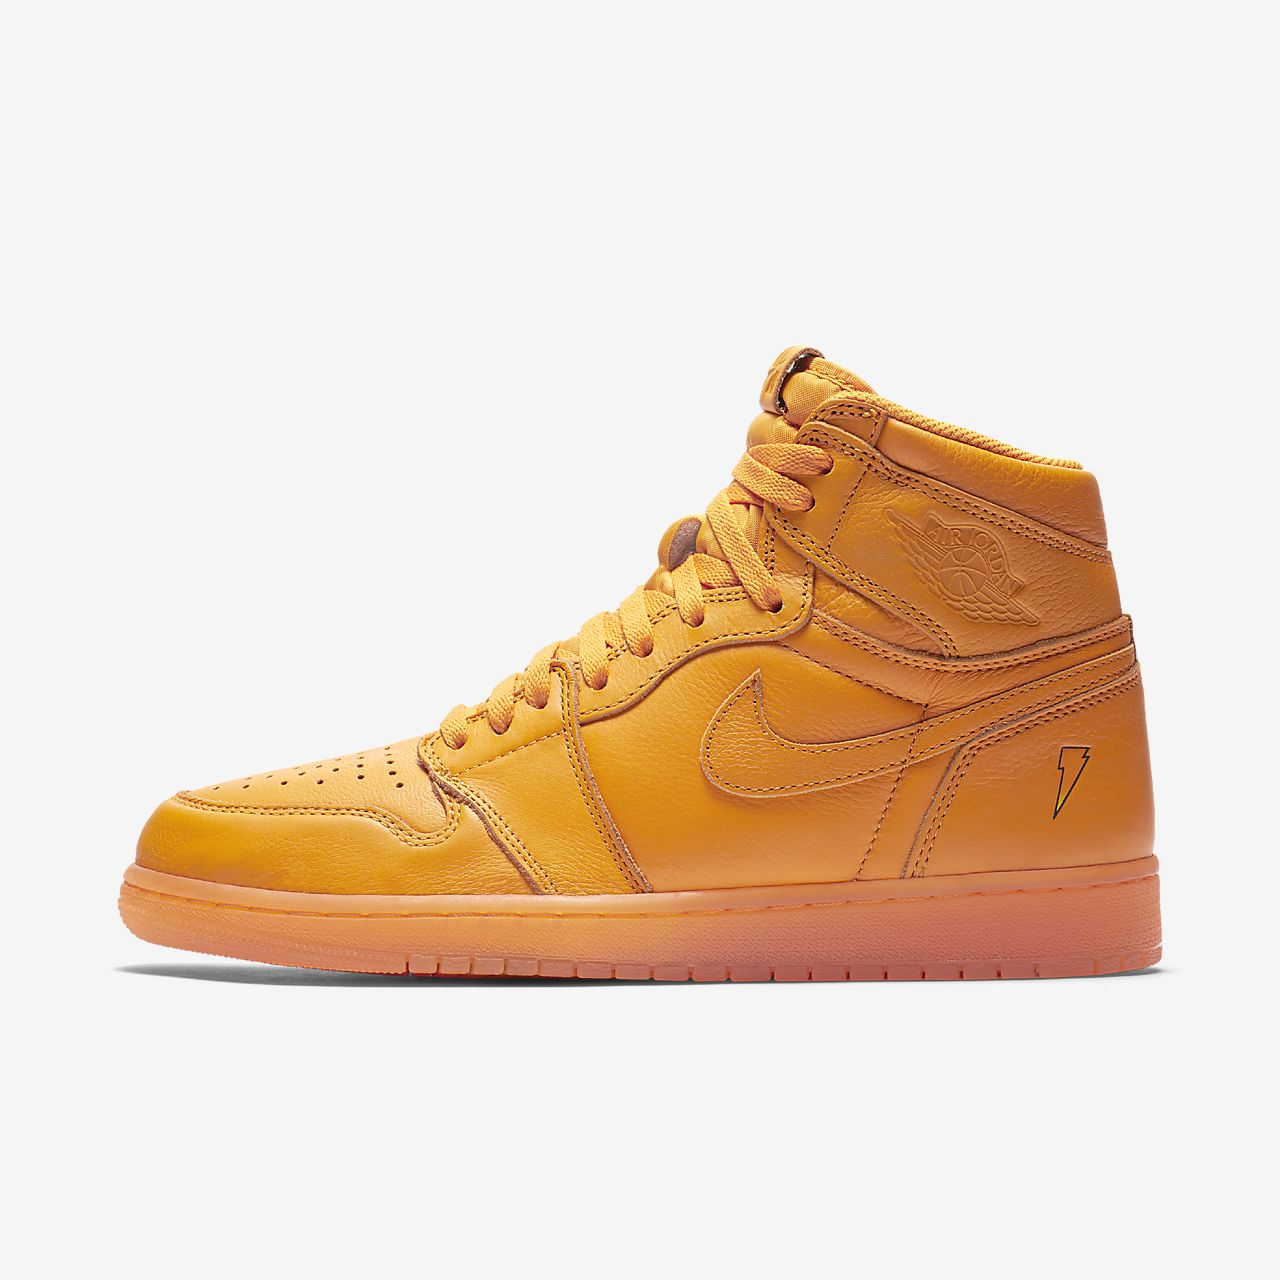 los angeles bc753 65ae1 Air Jordan 1 Retro High OG Orange